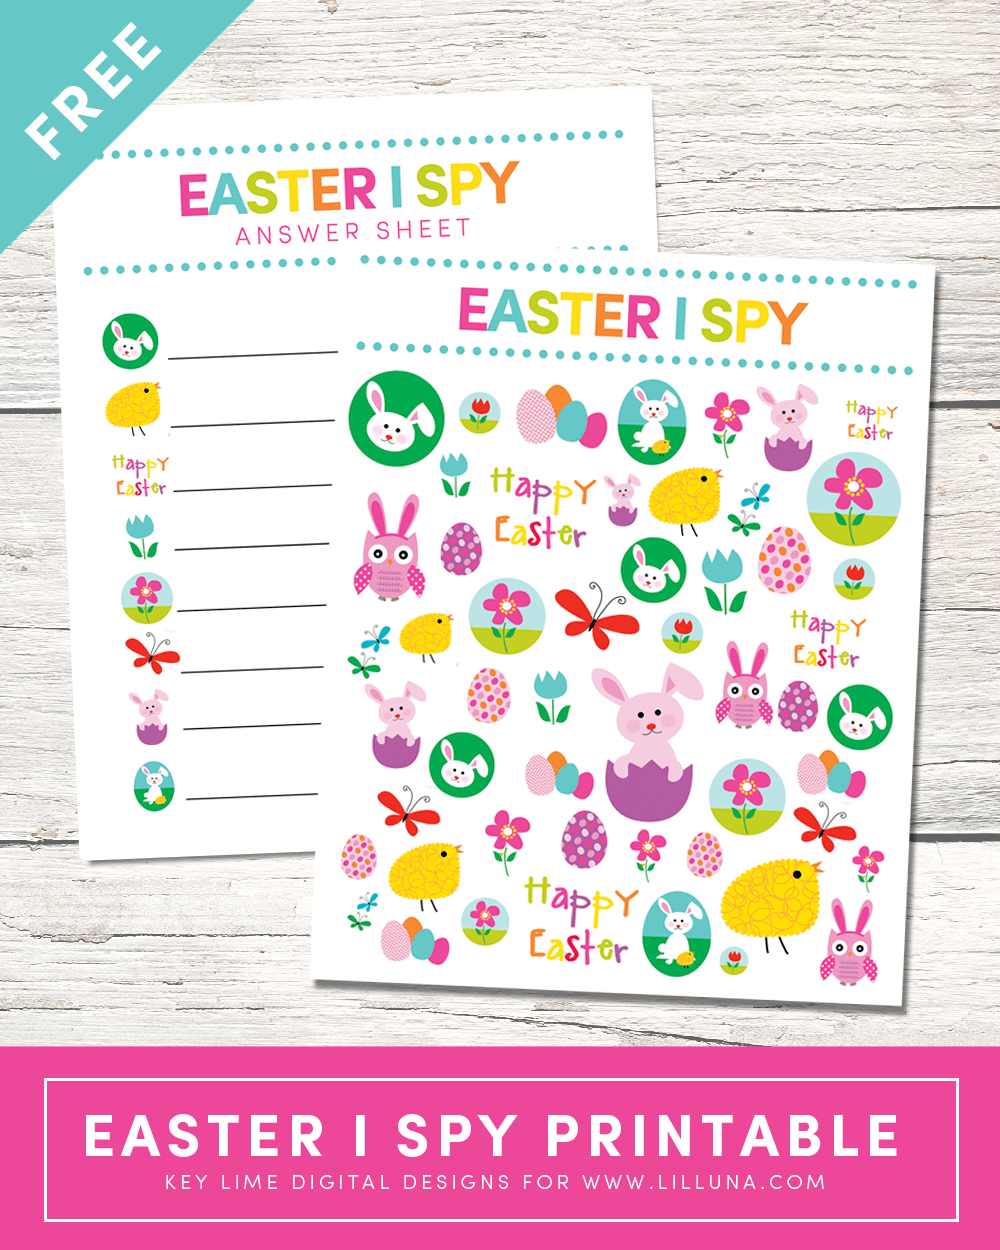 FREE Easter I Spry Printable - a super cute printable and game for the kids to play for Easter parties or even Easter Sunday!